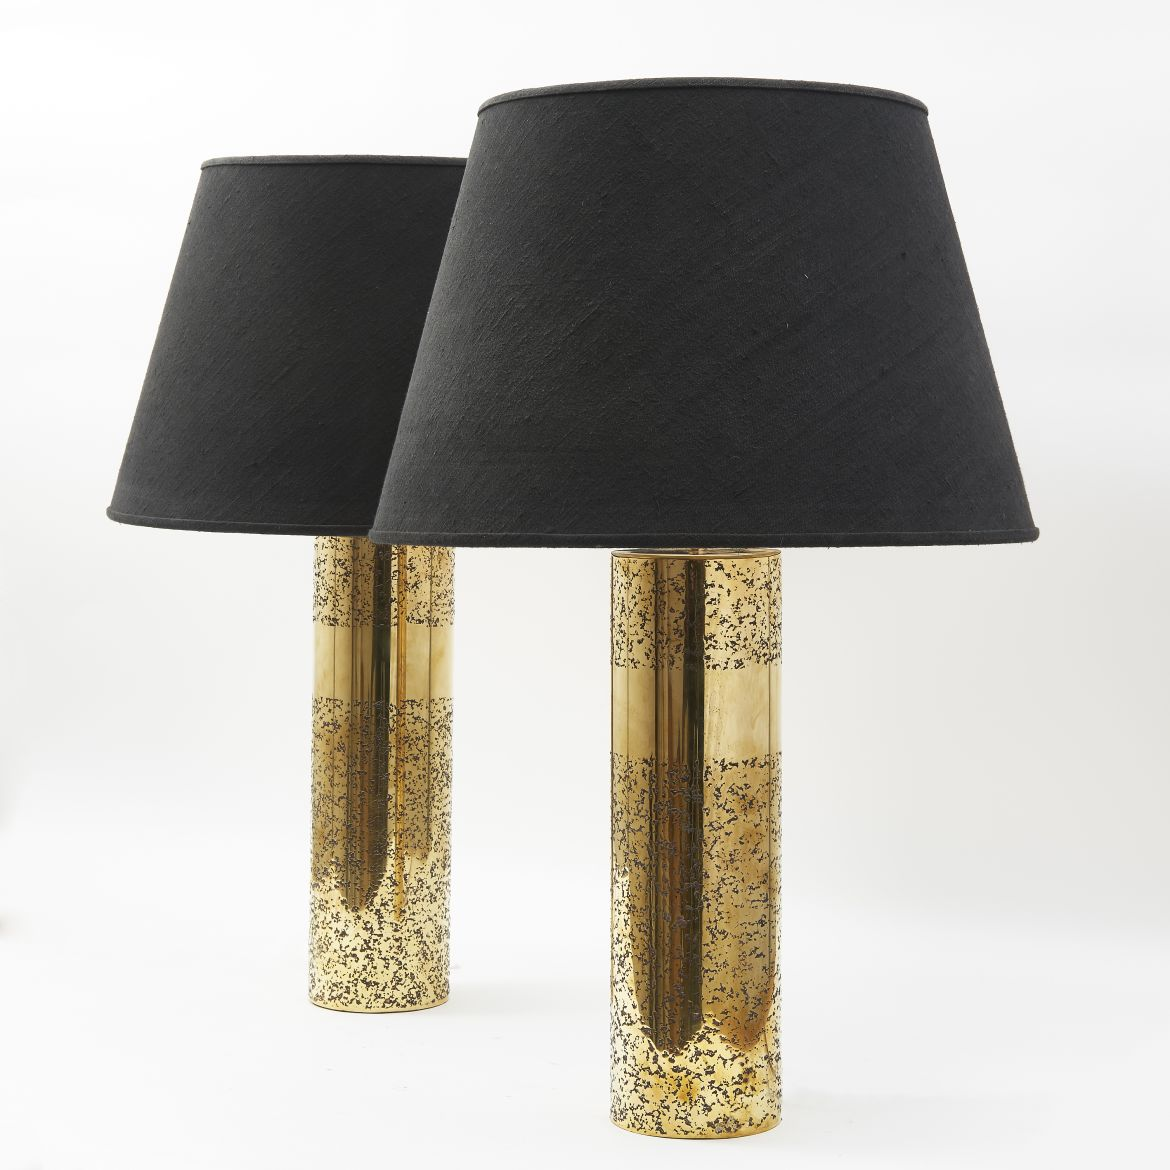 Aban Brass Lamps by Arriau